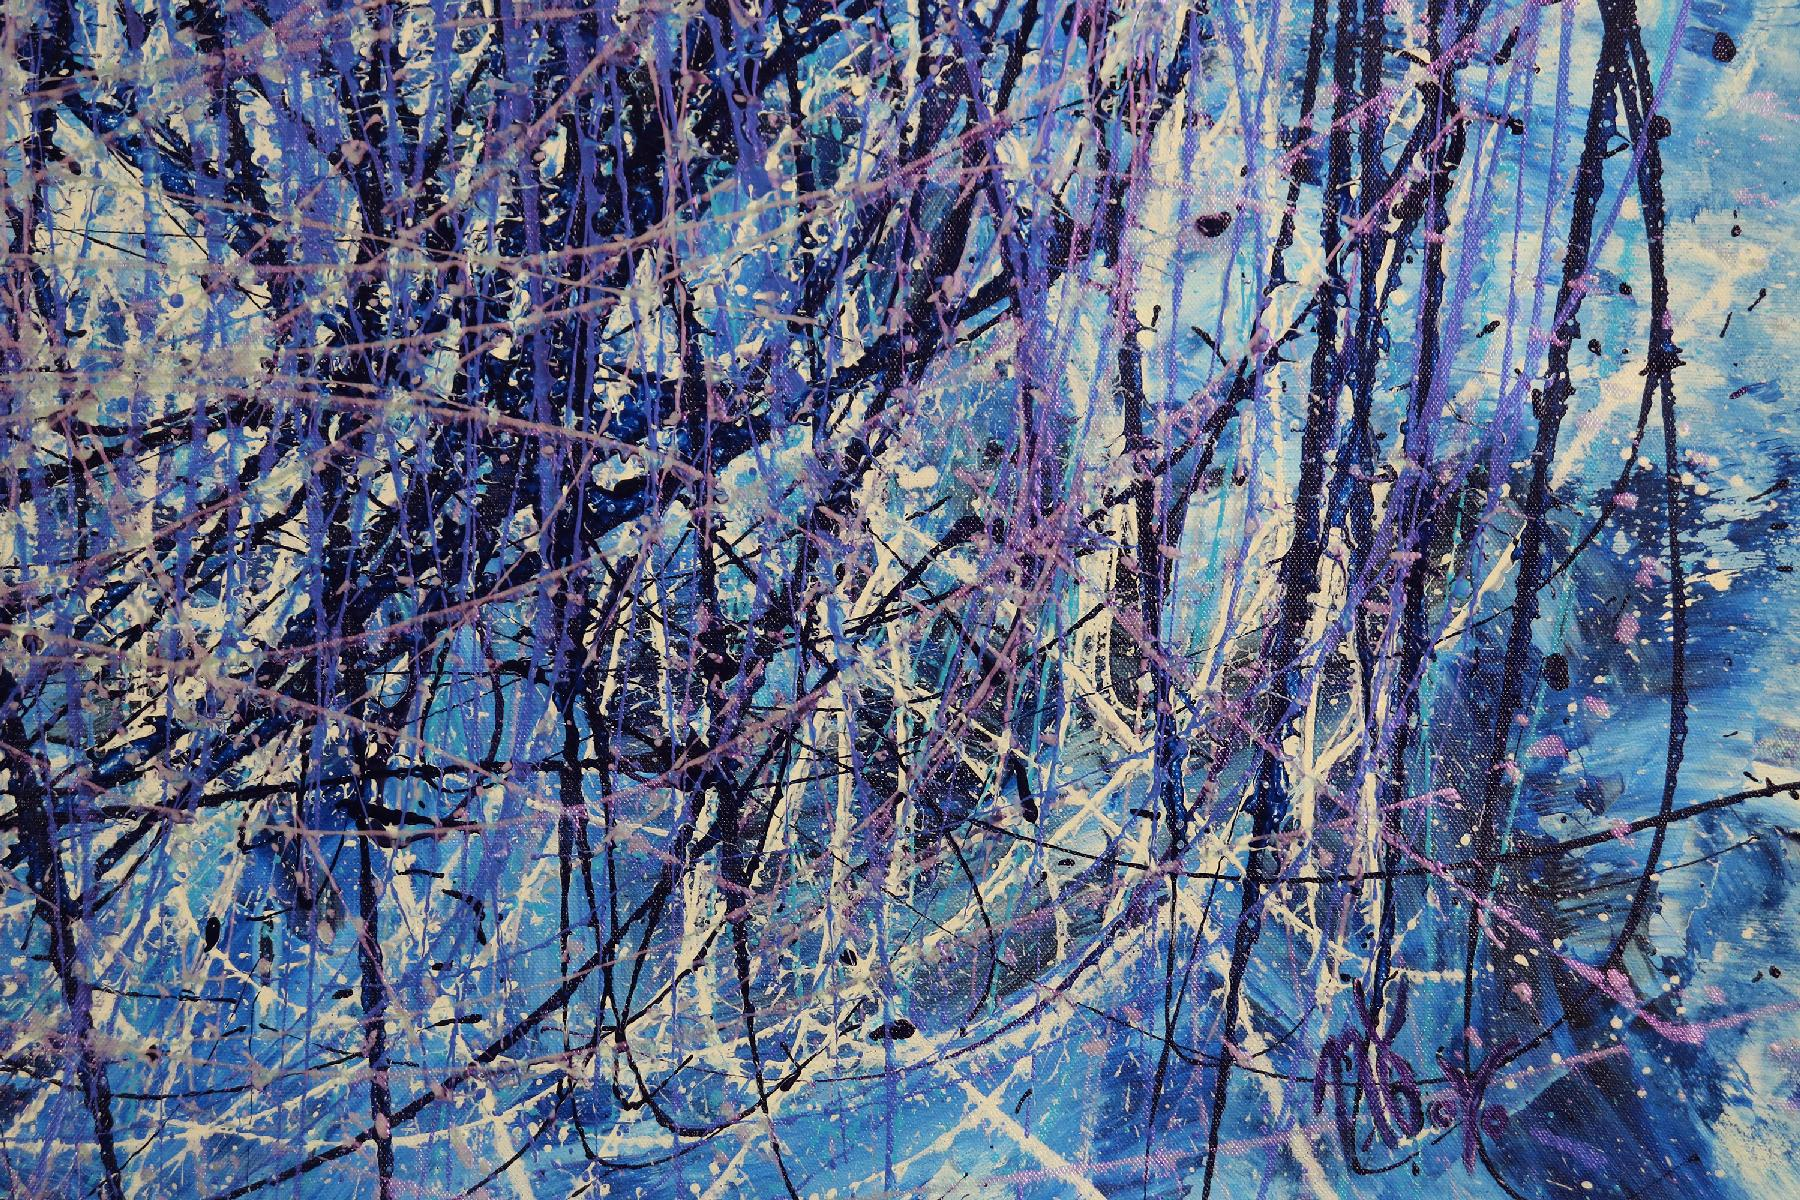 SOLD - Detail - Torrential Purple Storm (A Closer Look) 2 (2020) by Nestor Toro